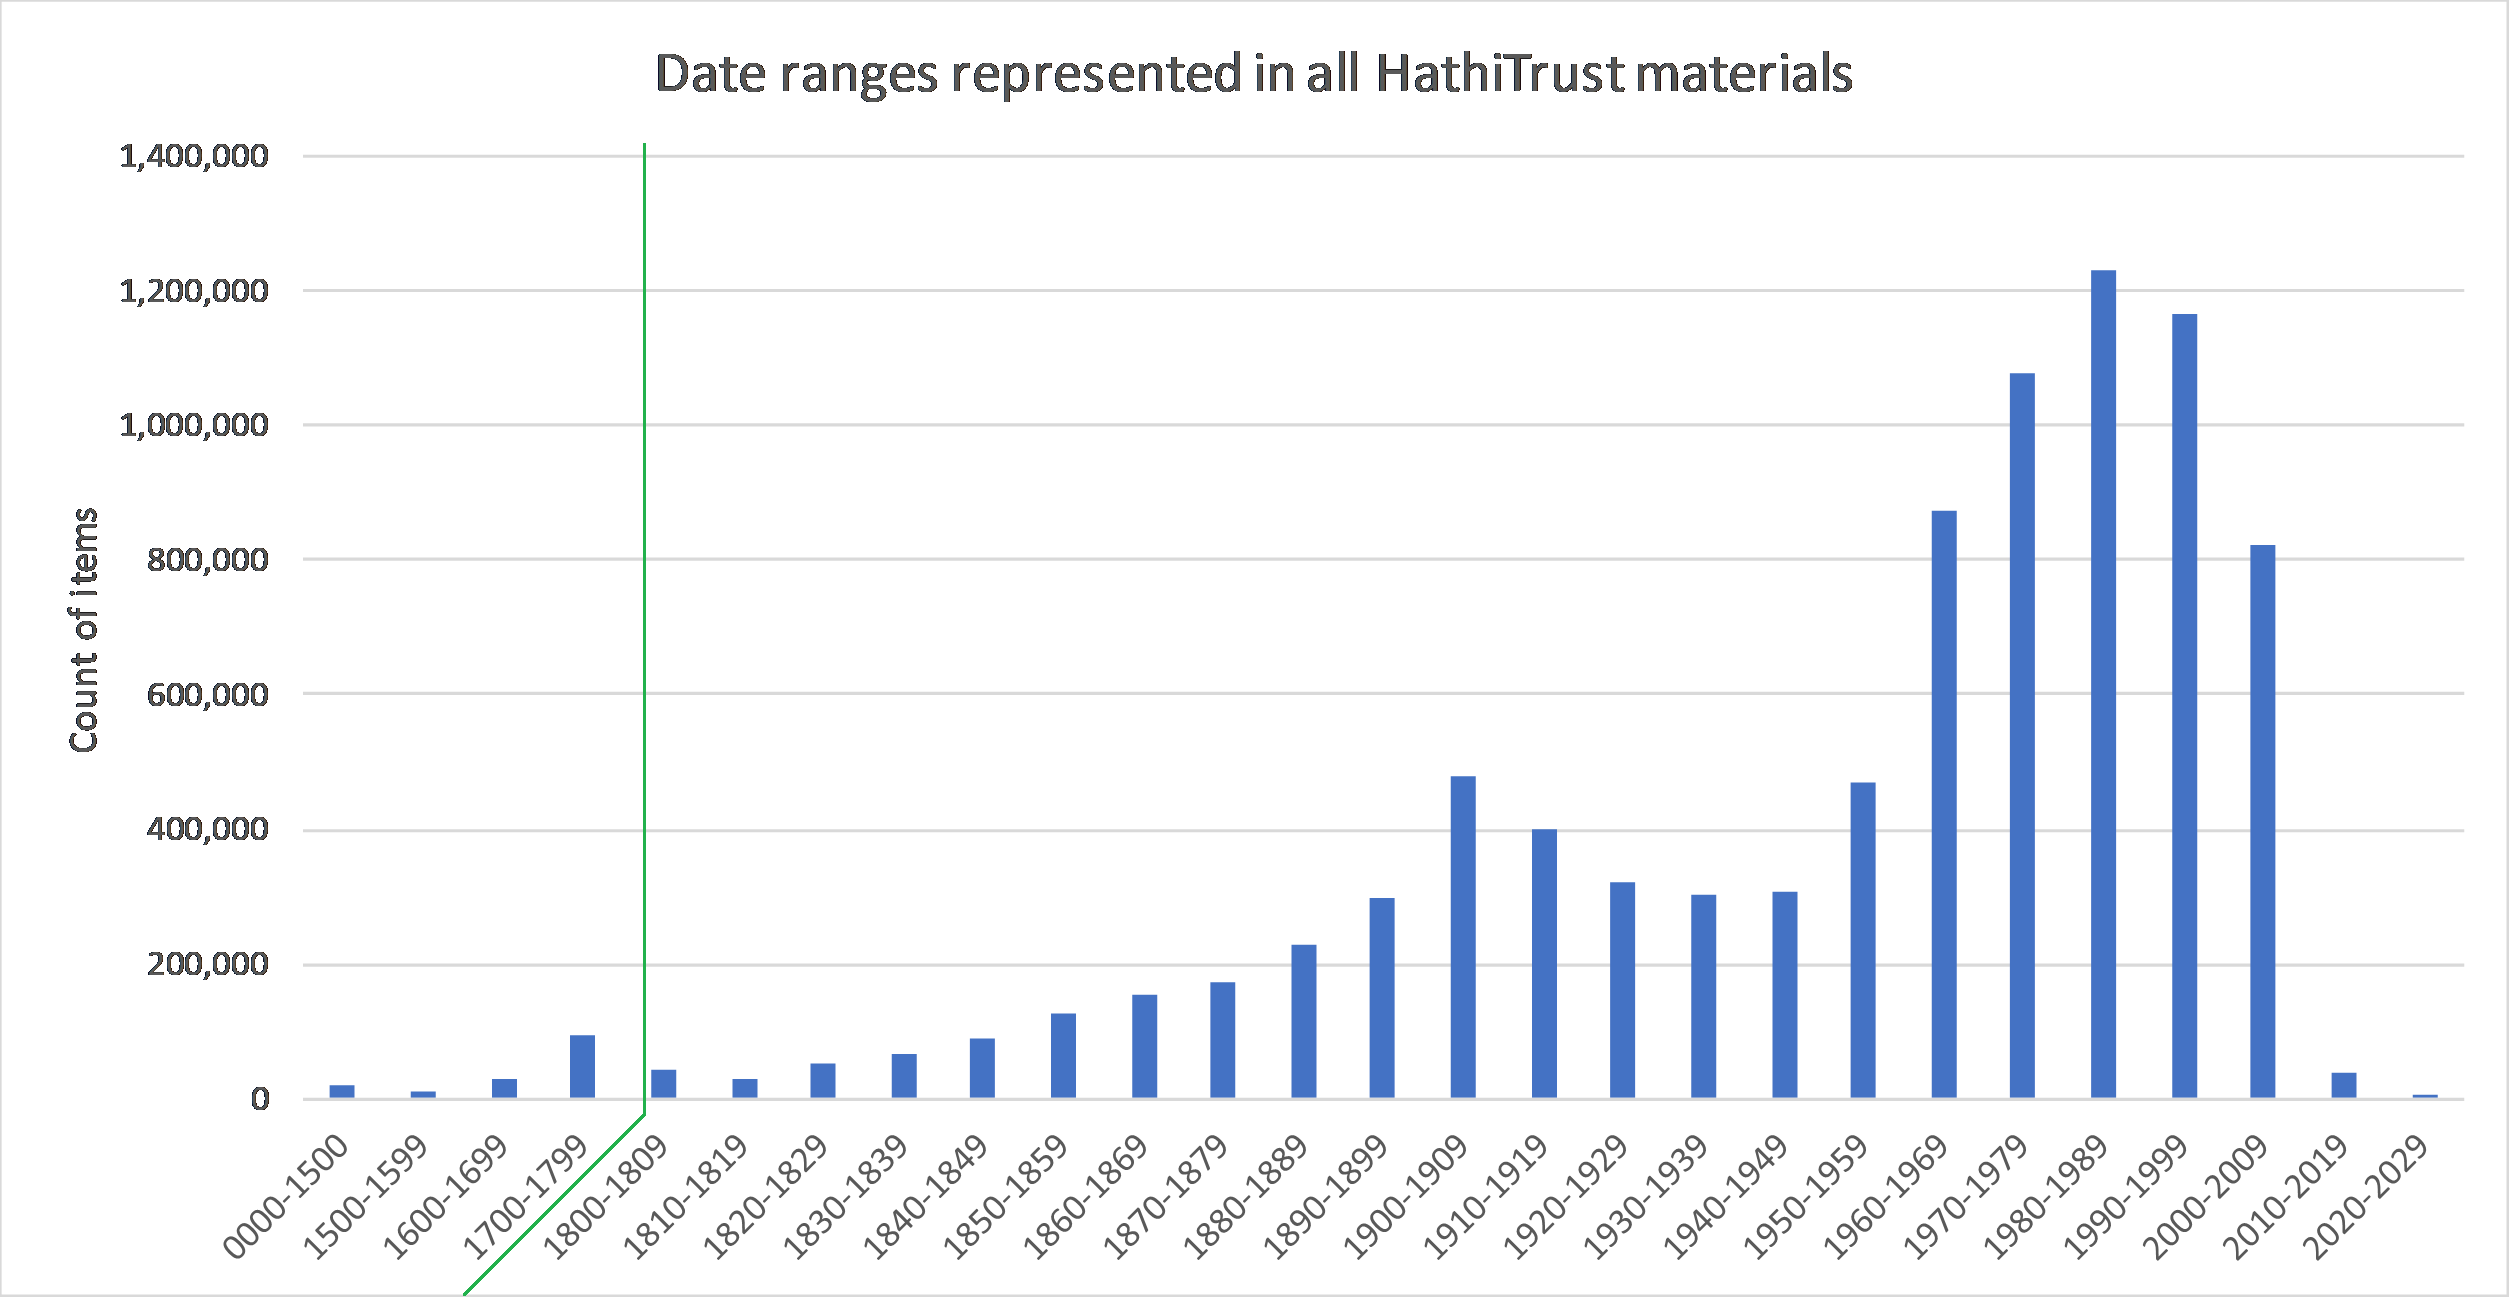 Figure showing languages date ranges represented in all HathiTrust materials